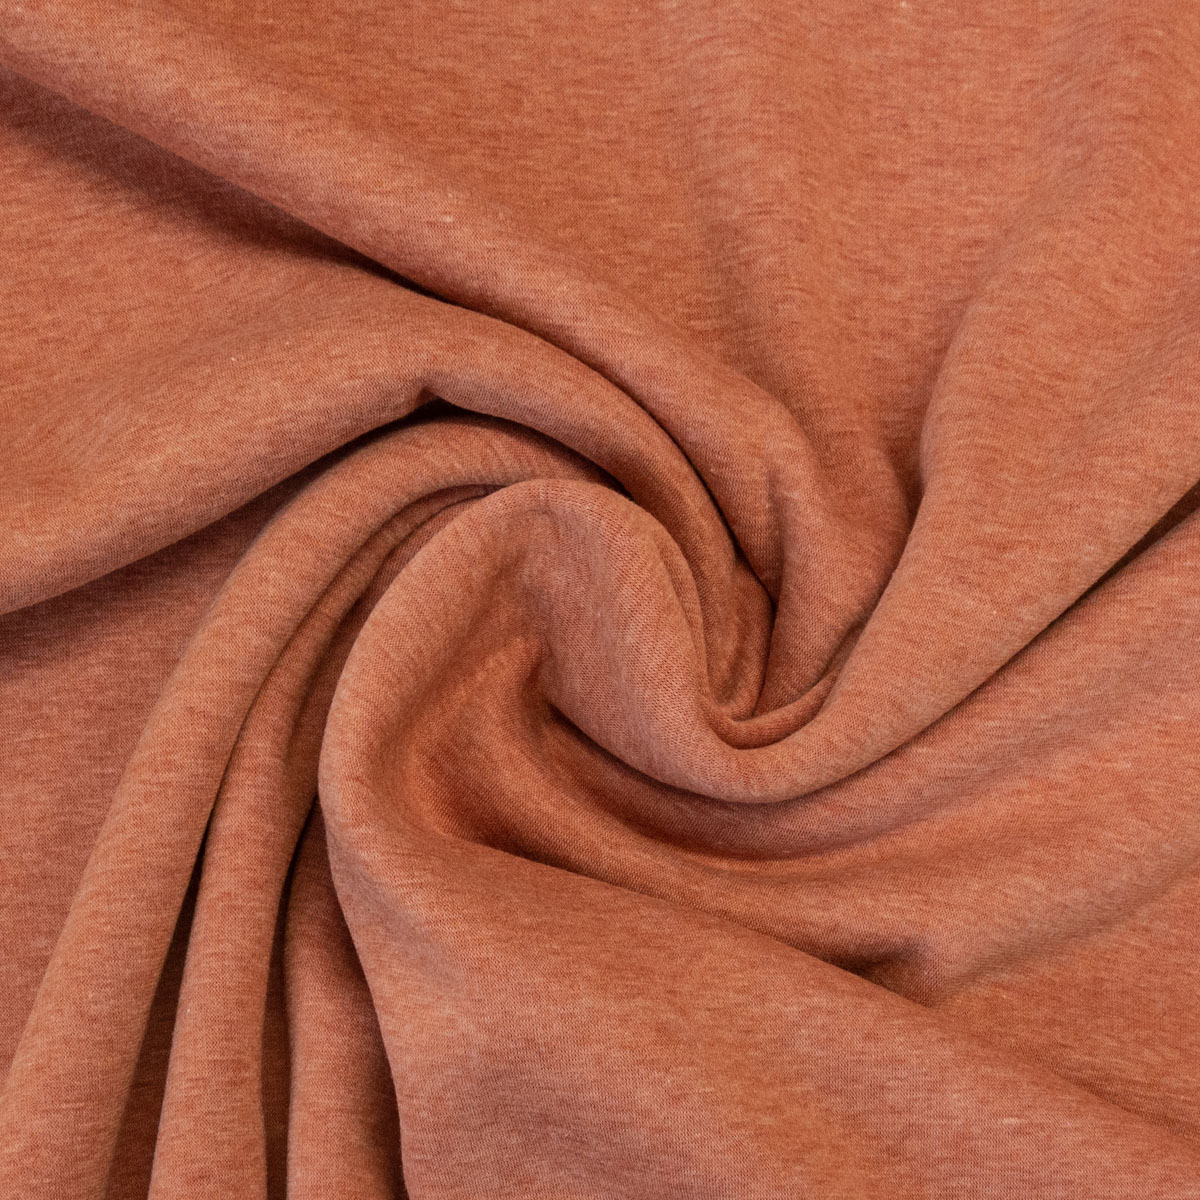 Alpenfleece, Double Face, meliert, Orange